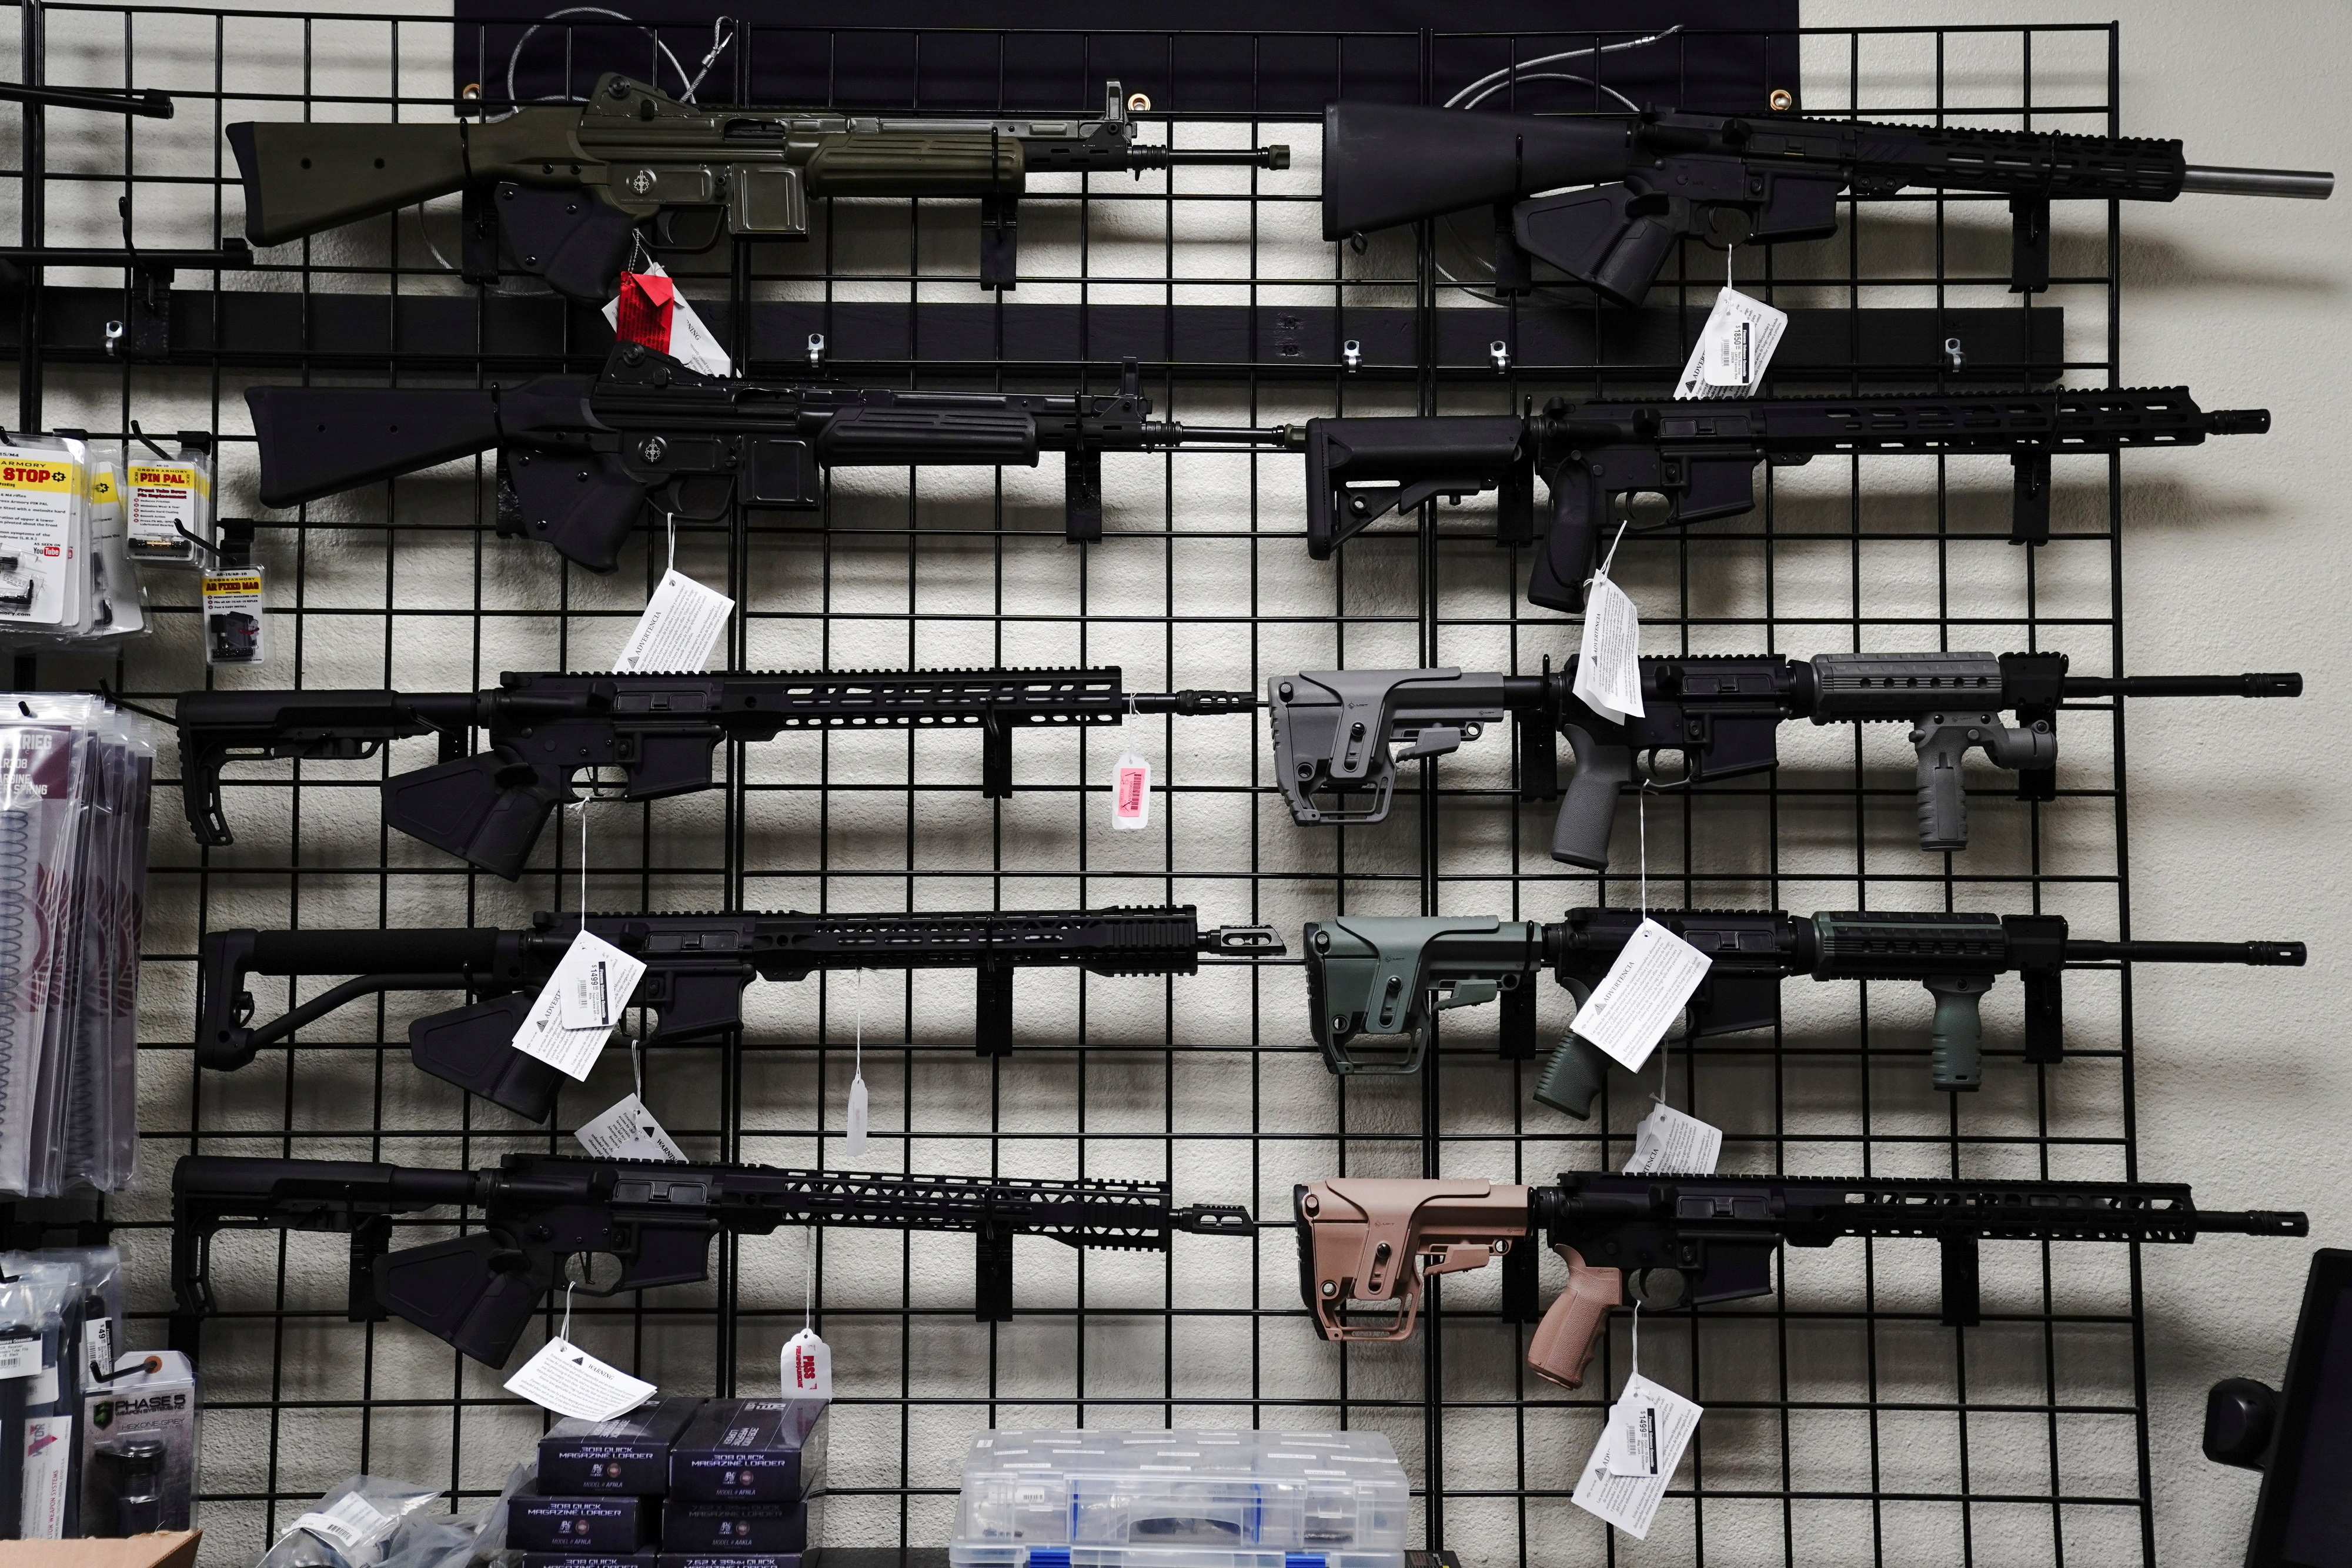 AR-15 style rifles are displayed for sale at Firearms Unknown, a gun store in Oceanside, California, U.S., April 12, 2021. REUTERS/Bing Guan/File Photo